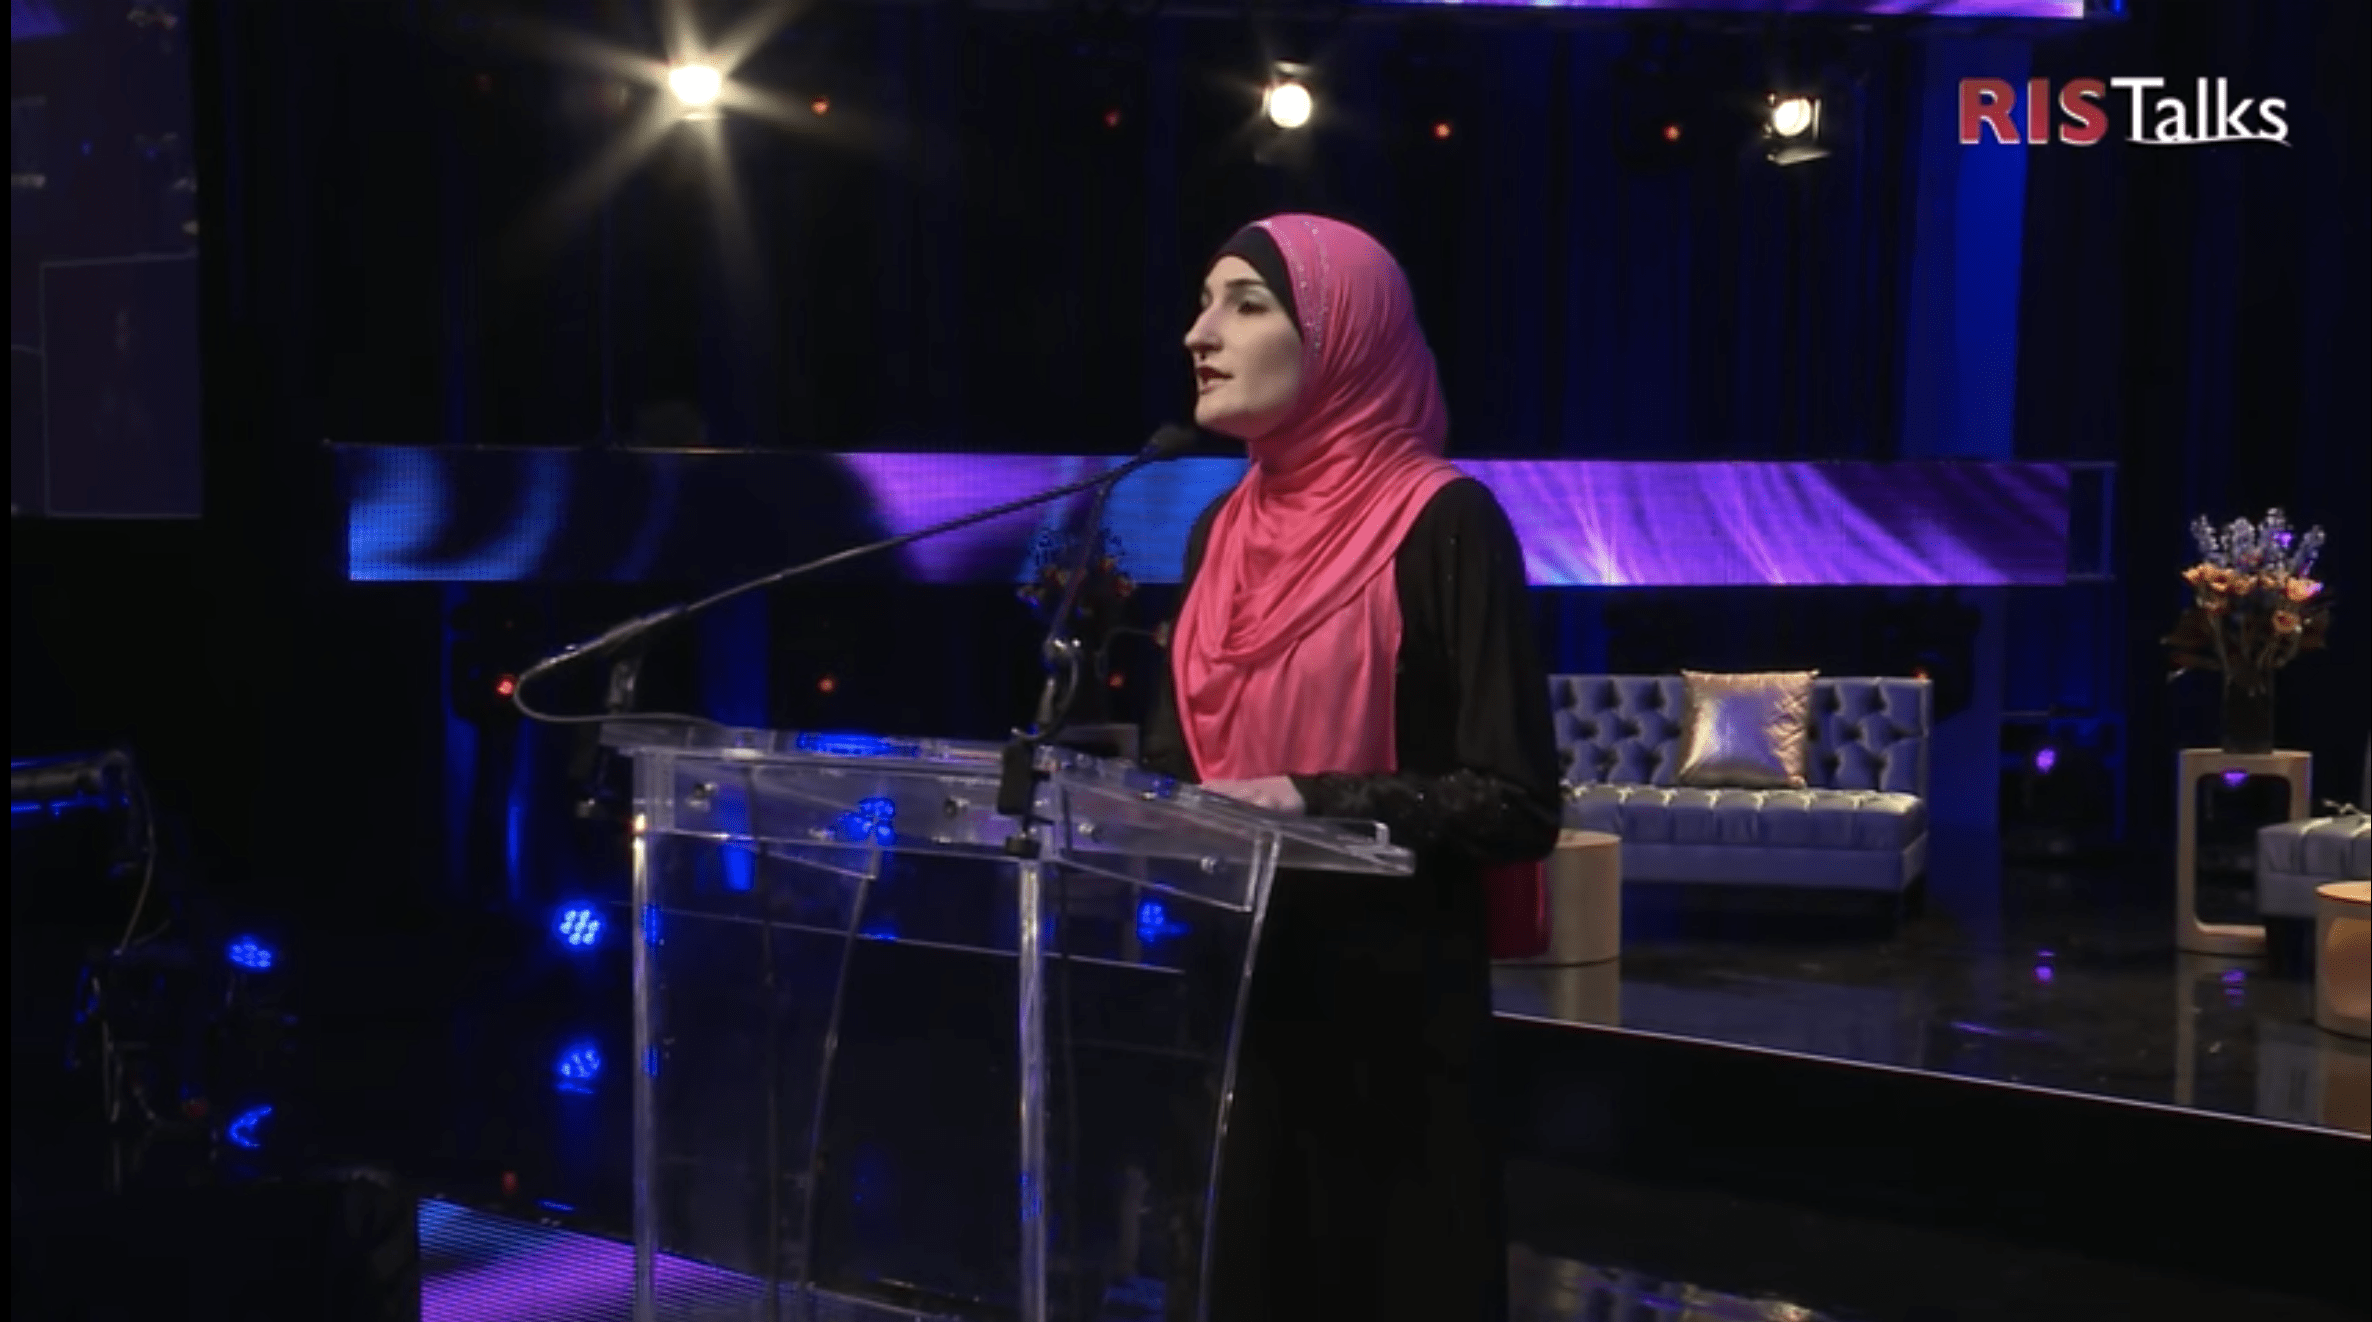 Linda Sarsour – Don't Believe the Hype! The Making of the Muslim Menace